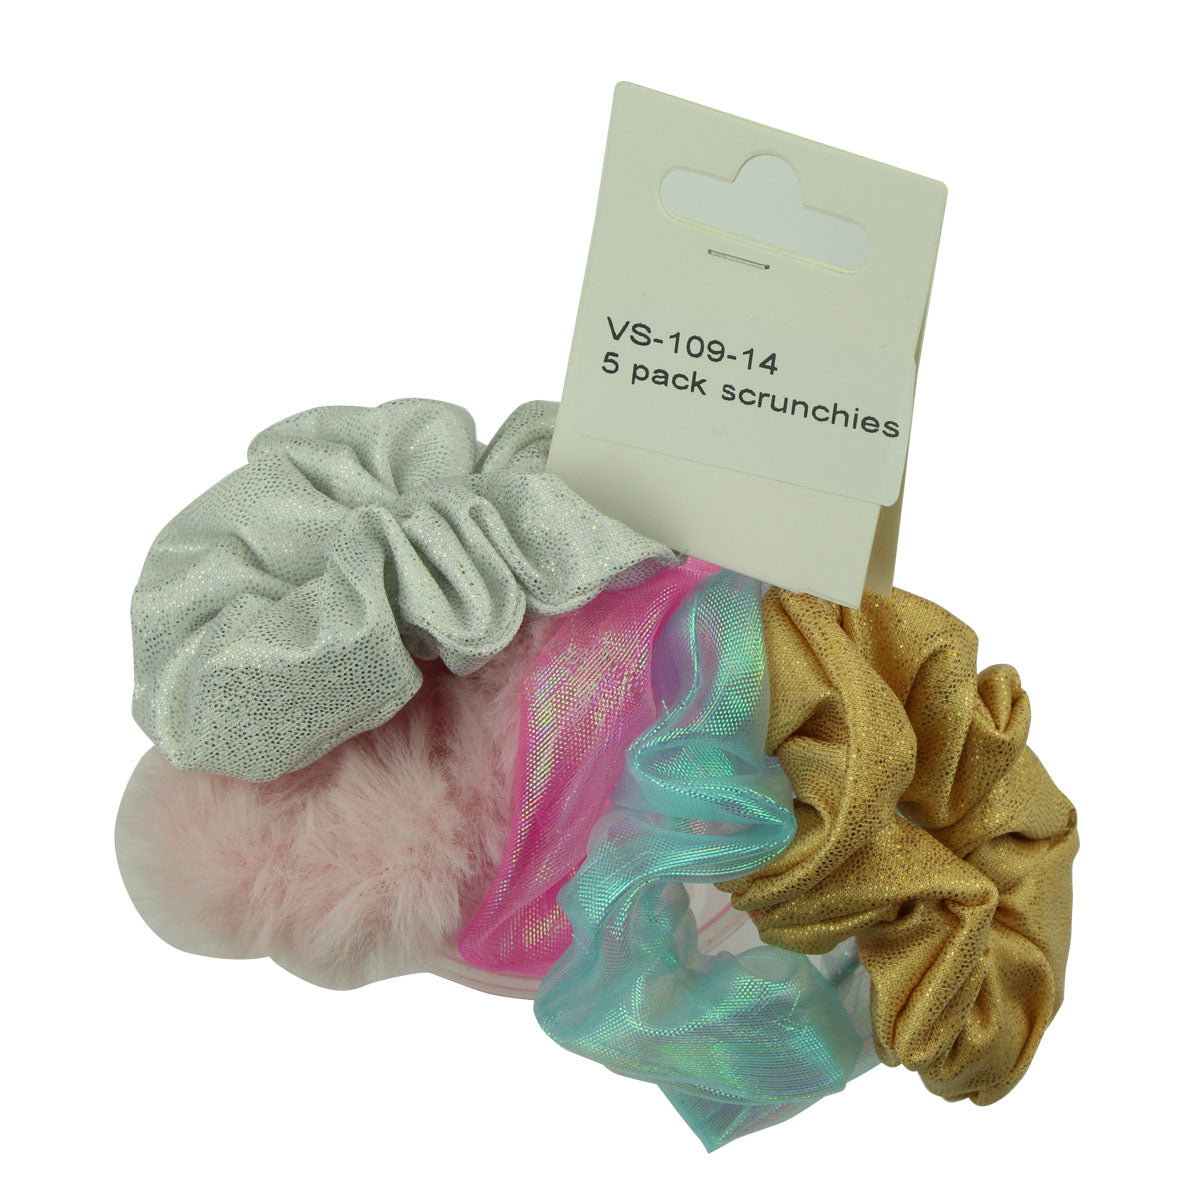 holographic hair scrunchies 5 pack hair scrunchies mermaid scrunchies furry hair scrunchies 6615 - SOHOBUCKS CO.,LIMITED